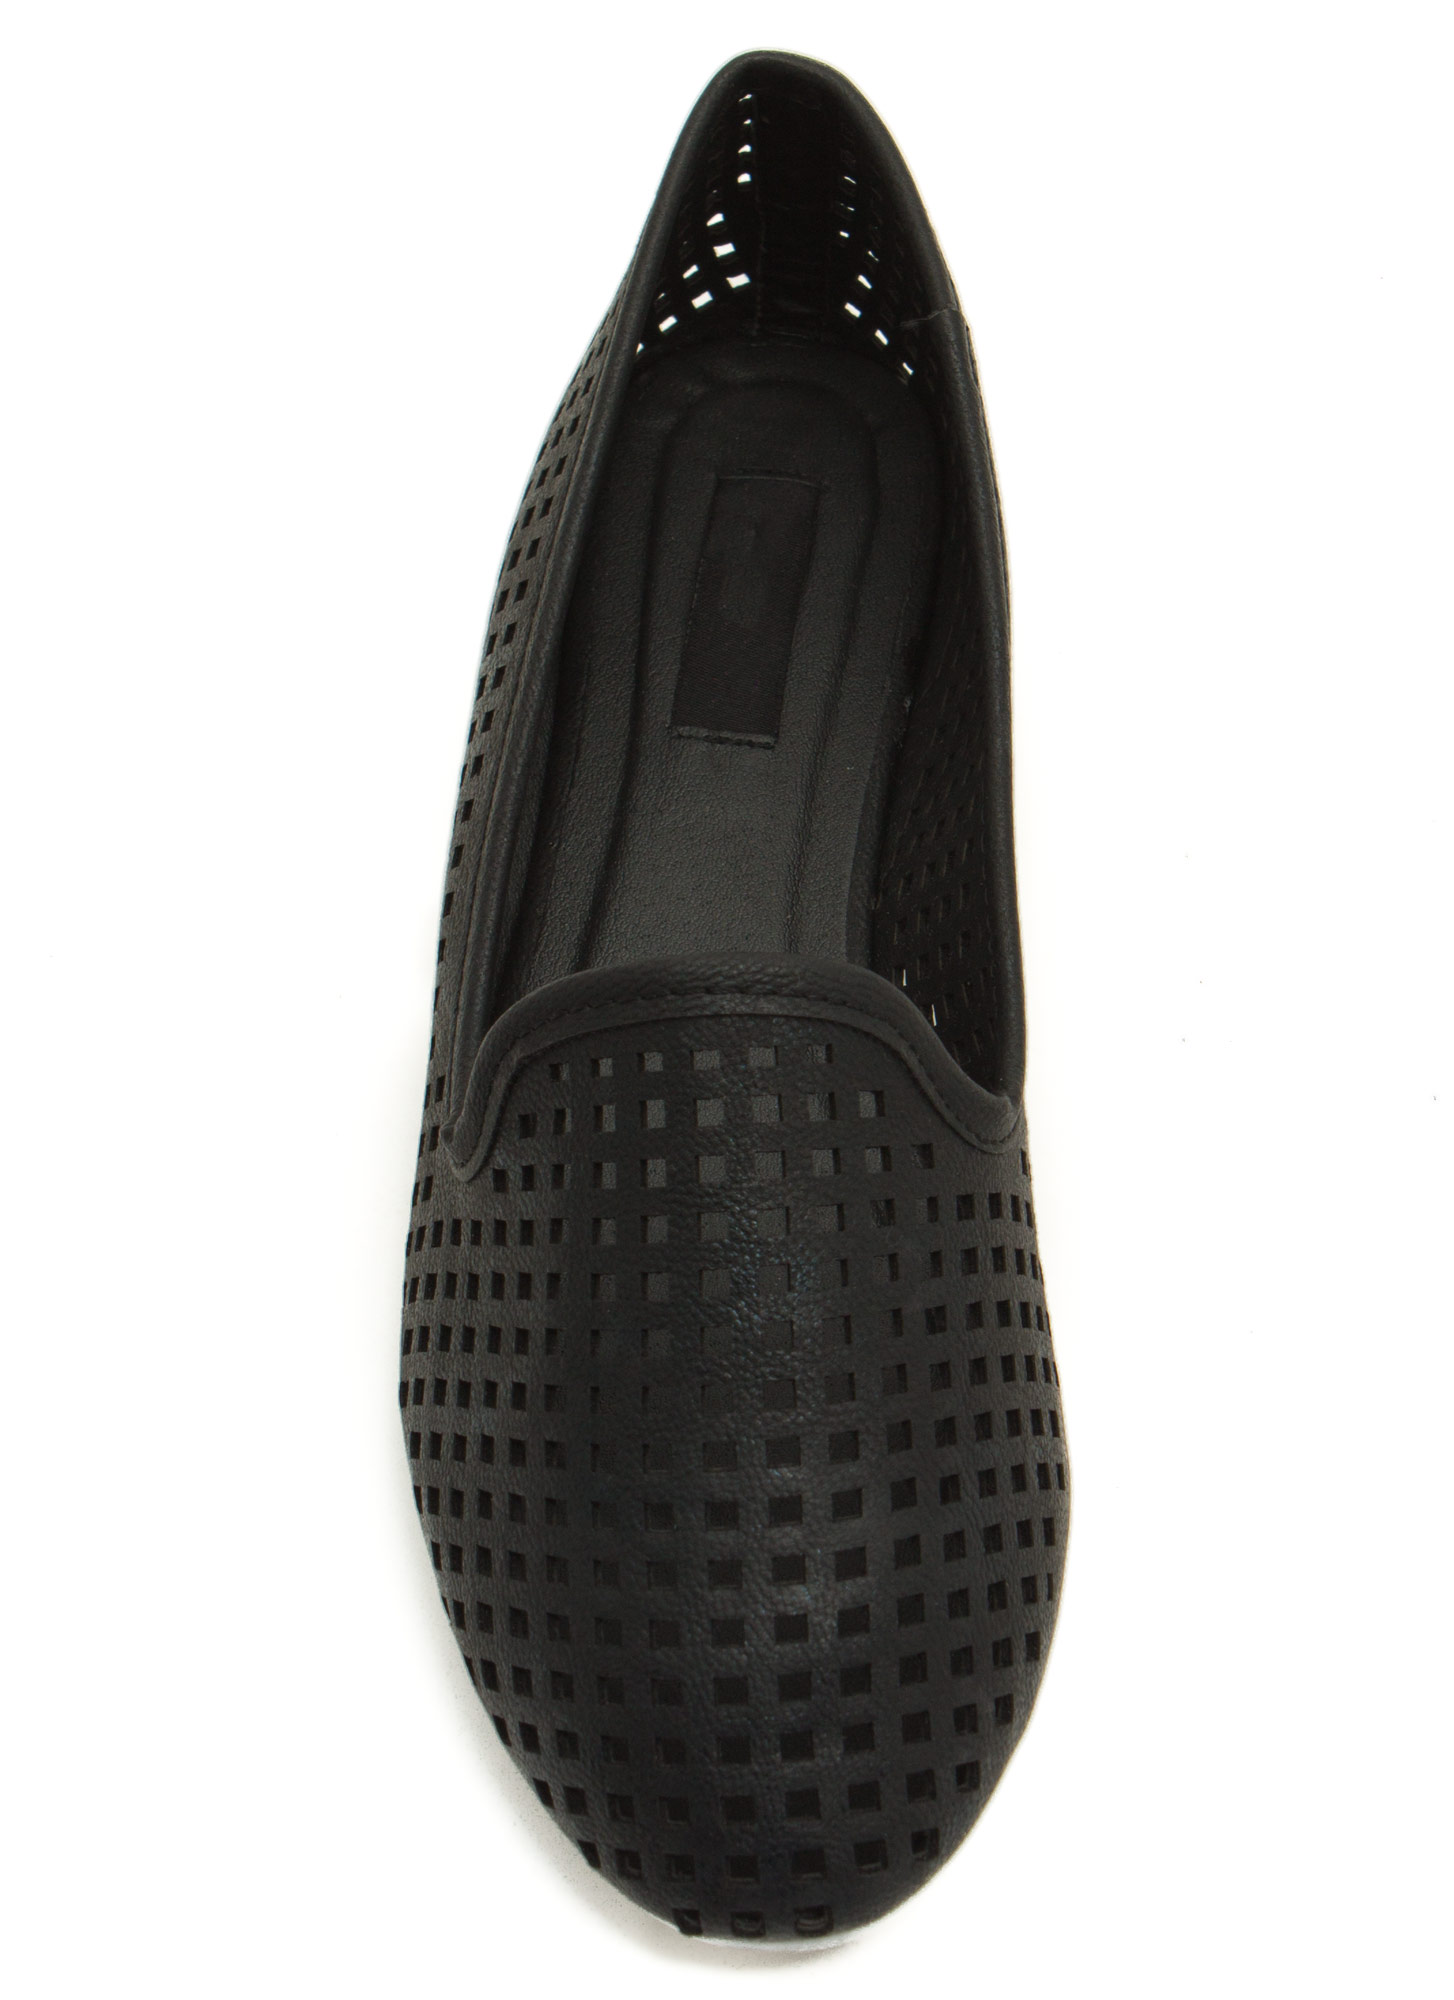 Per forated Ten Smoking Flats BLACK    (Final Sale)